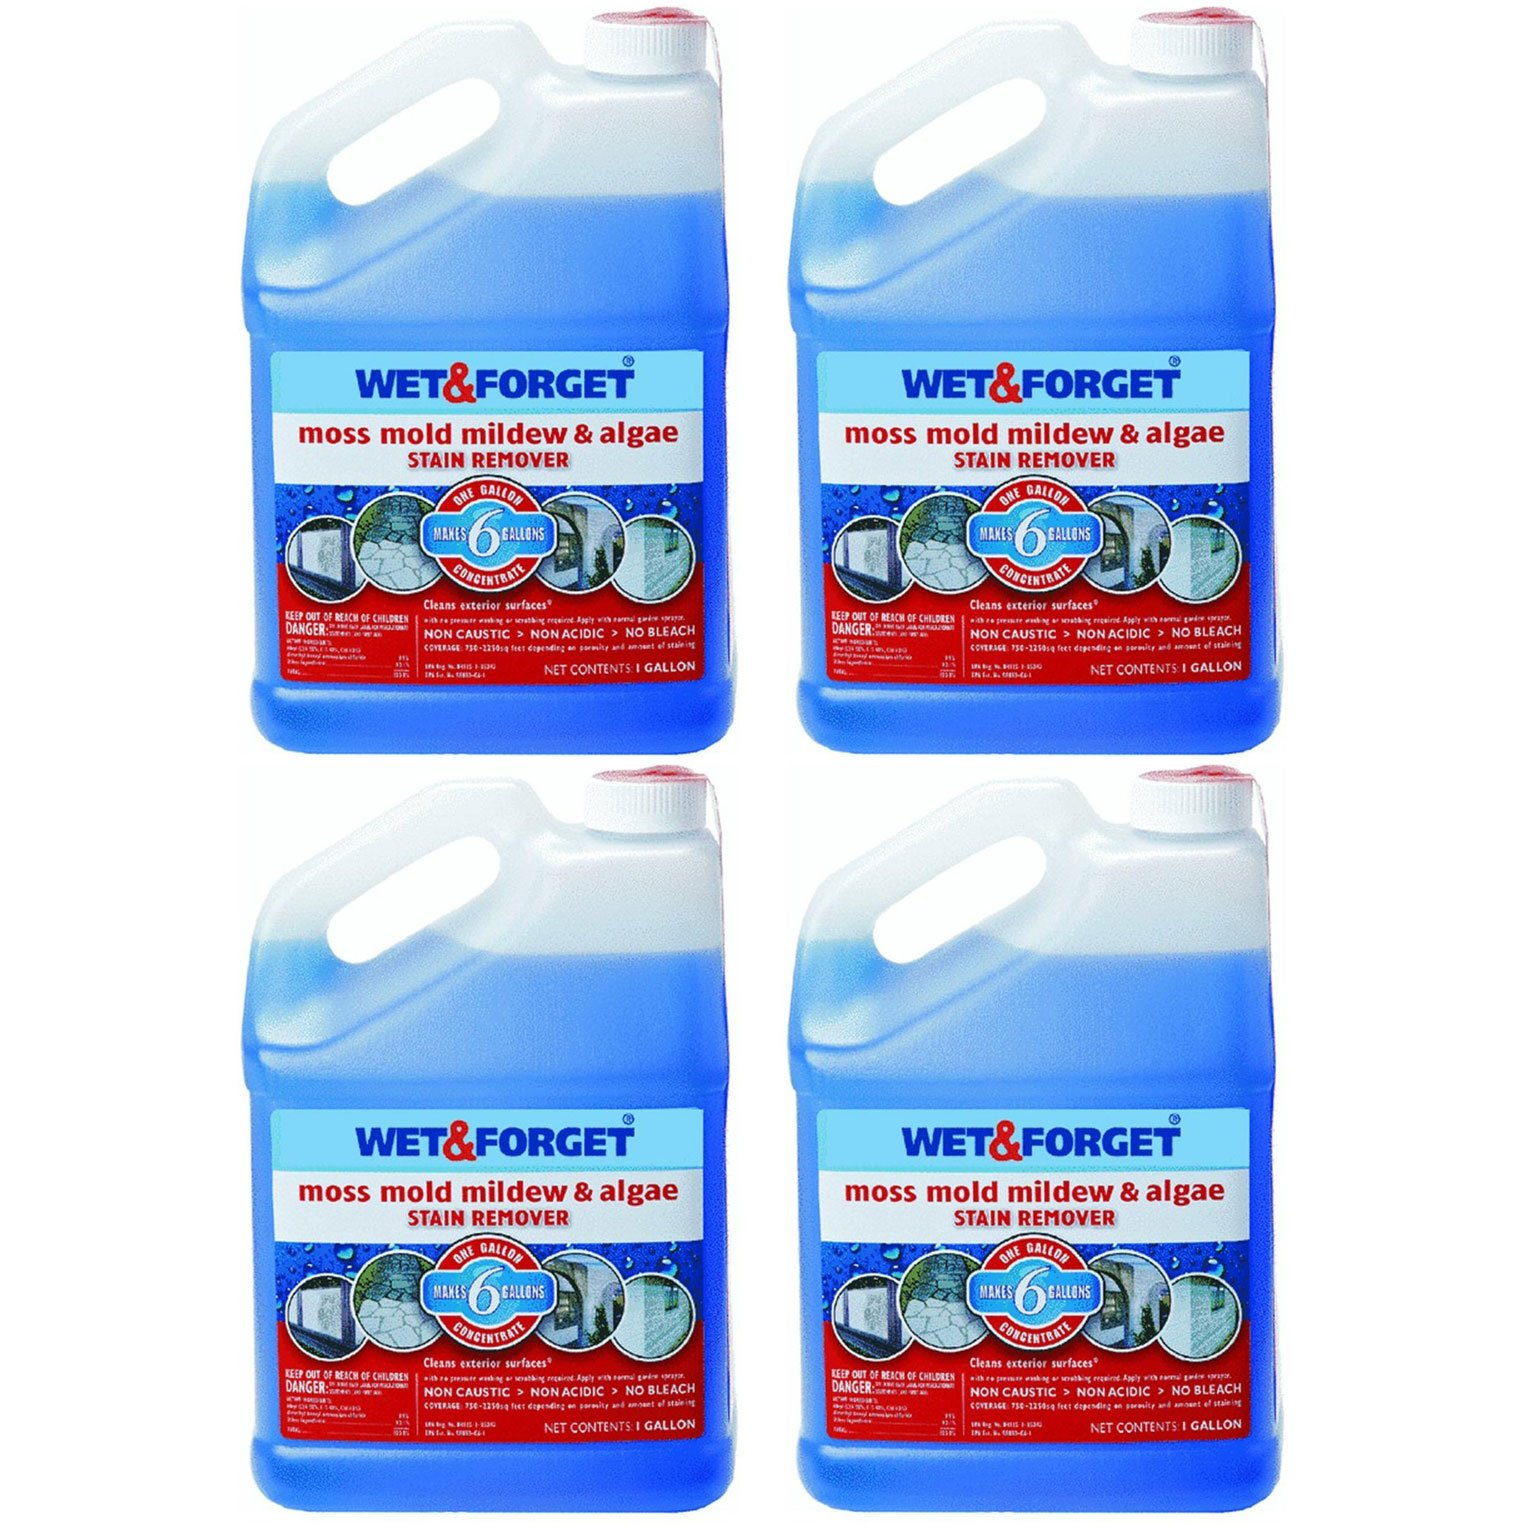 Wet and Forget Moss, Mold, Mildew & Algae Stain Remover, 1 Gallon Concentrate Makes 6 Gallons - 4 Pack